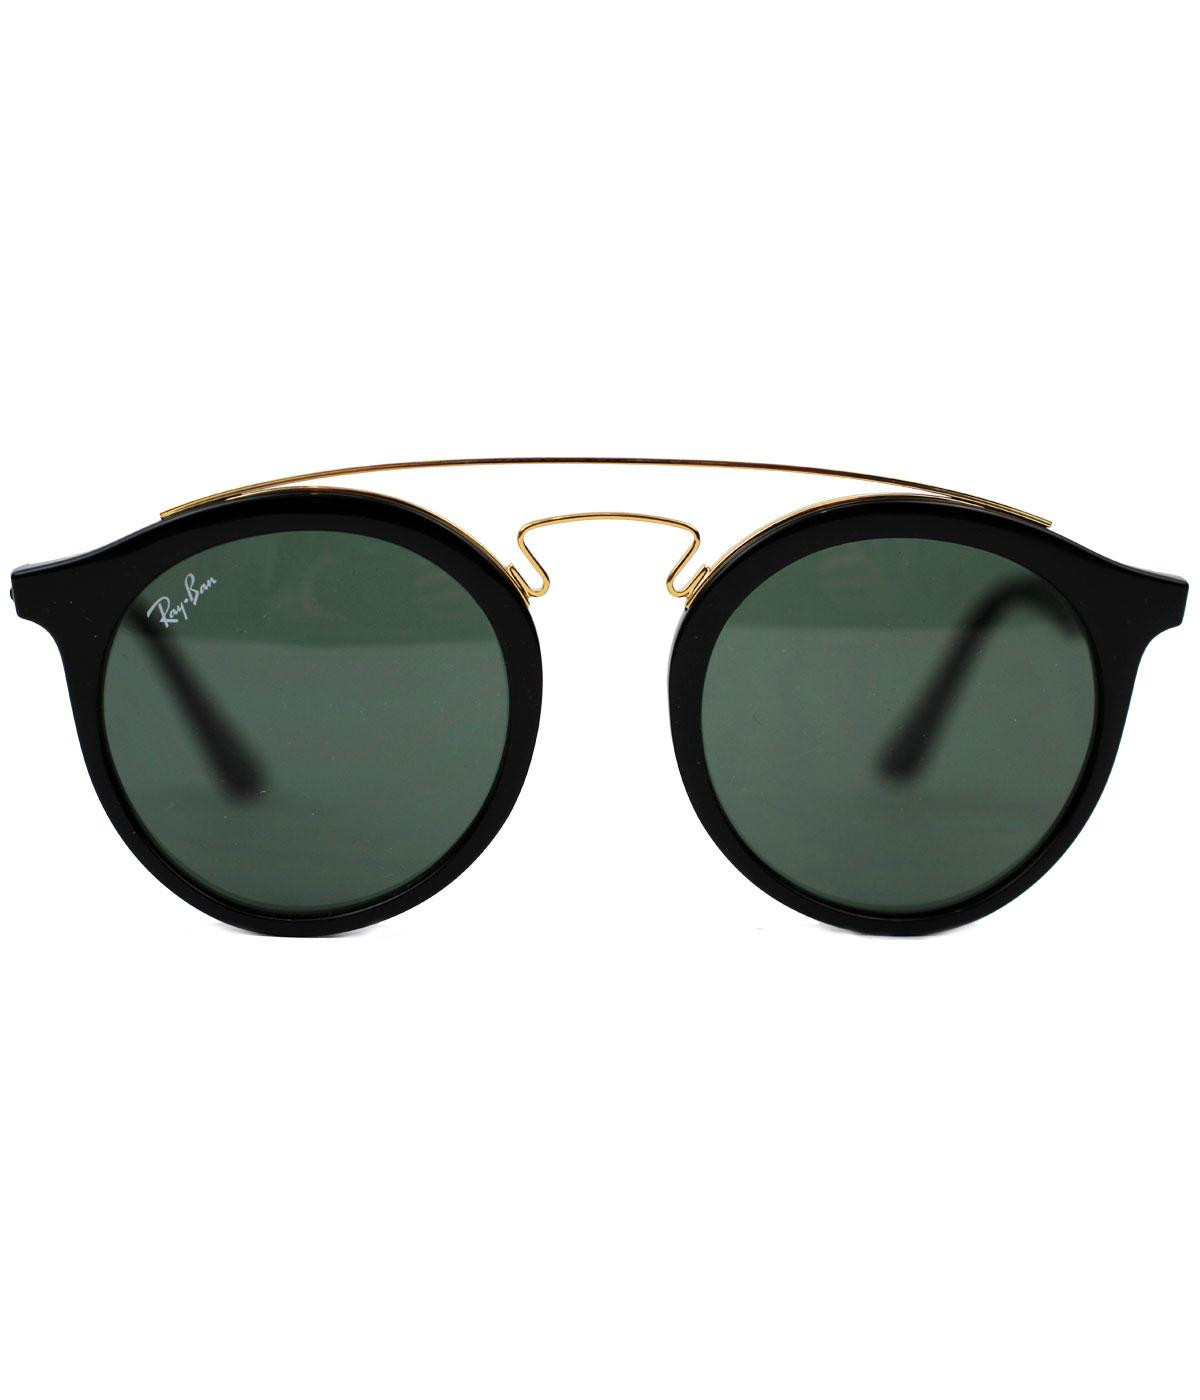 8143a90e99 RAY-BAN Retro Mod 60s Round Clubmaster Sunglasses in Black